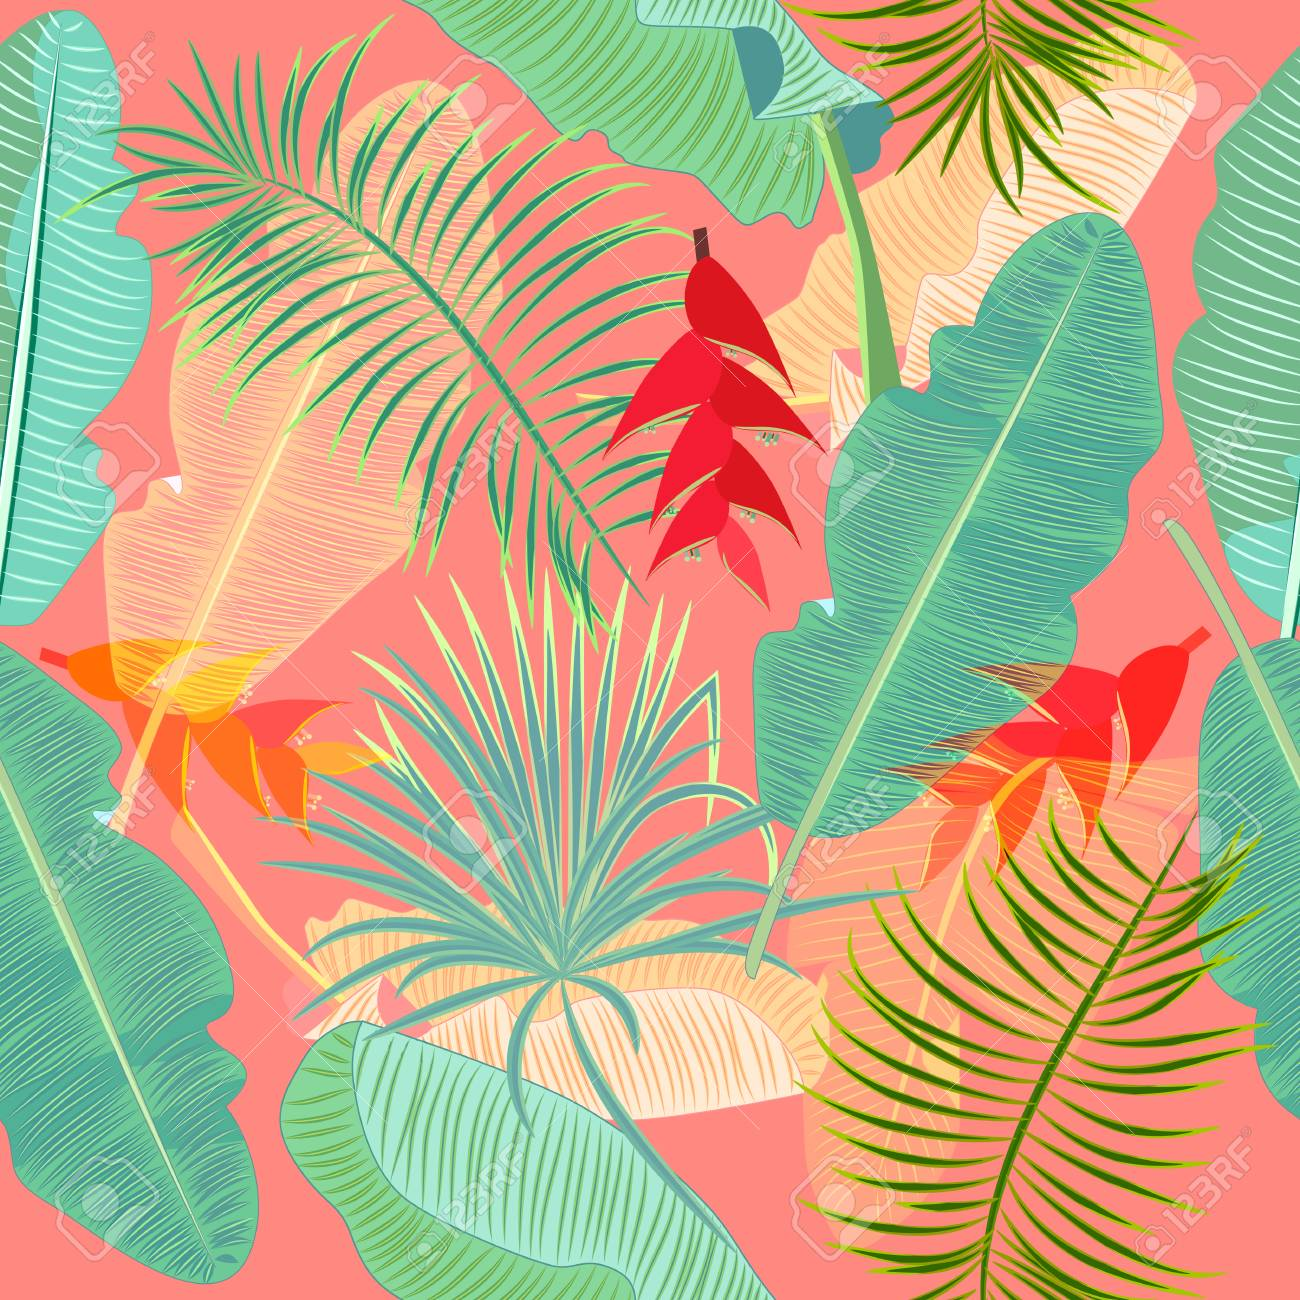 Seamless Pattern Of Exotic Jungle Plant Tropical Palm Leaves Royalty Free Cliparts Vectors And Stock Illustration Image 110001862 Jungle plant, wild flowers, forest trees, jungle leaves vector license: seamless pattern of exotic jungle plant tropical palm leaves